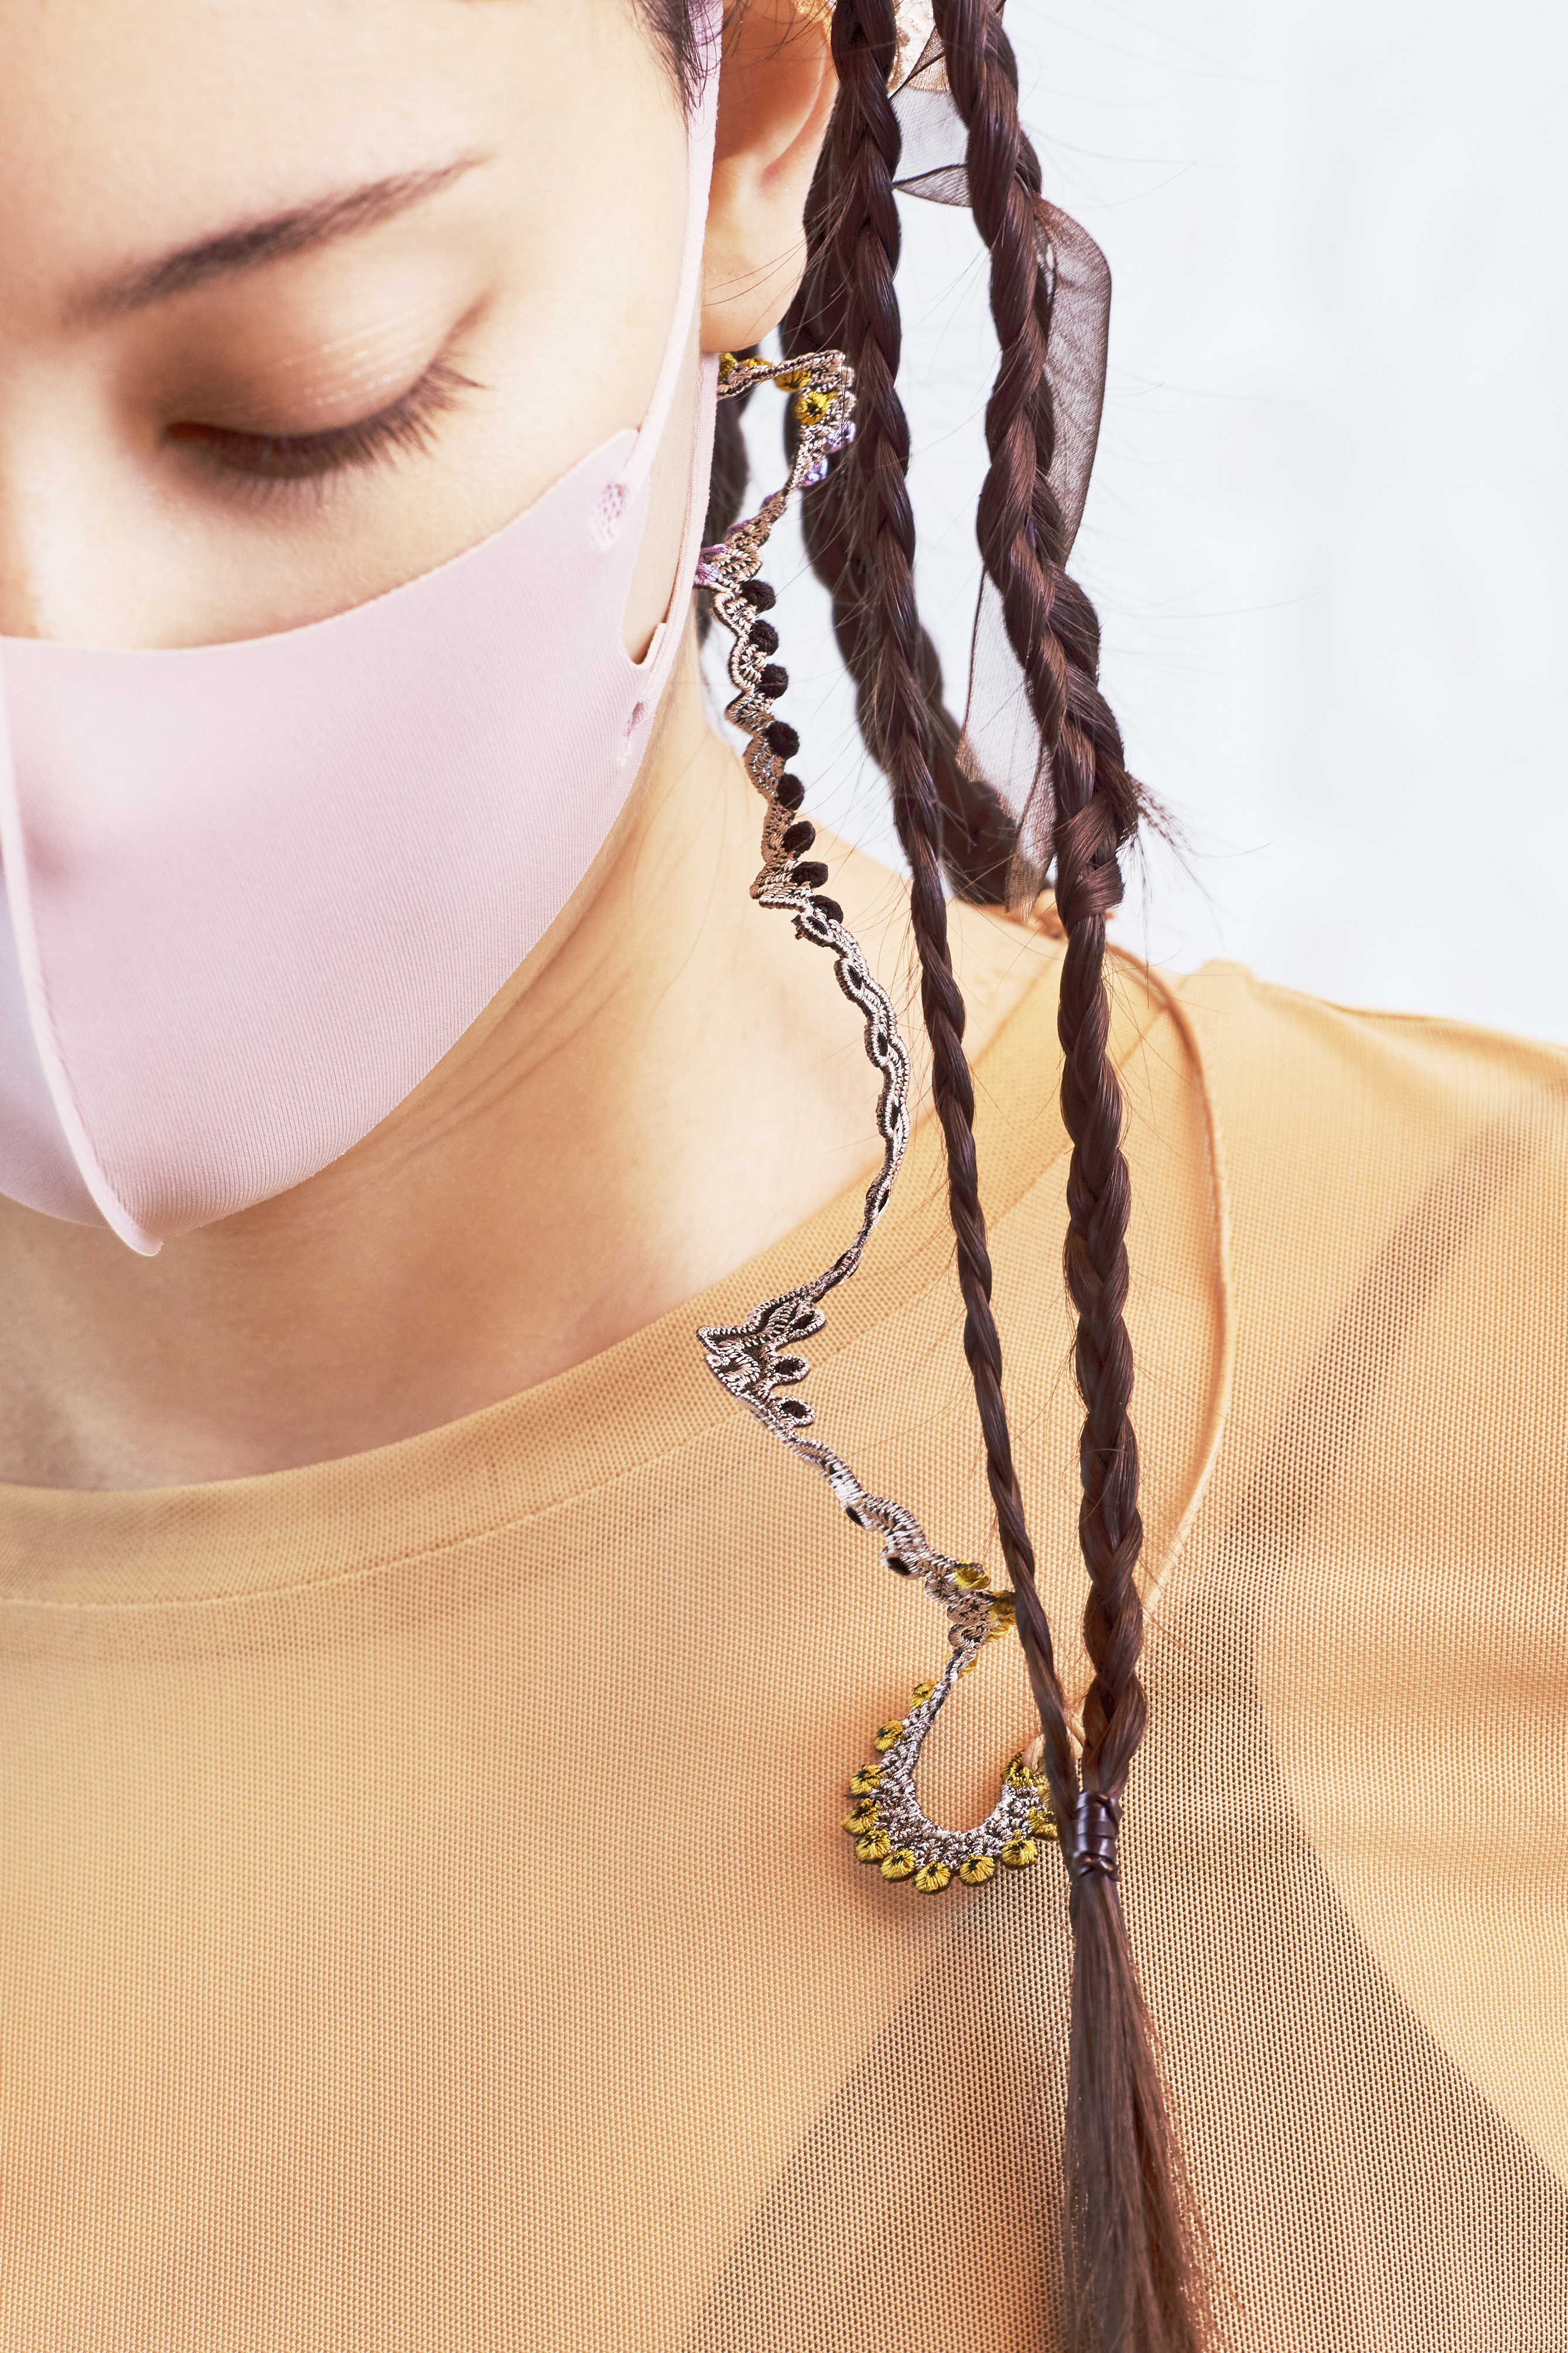 ARRO / Embroidery mask strap  / glass code  / WHORLS / GRAY